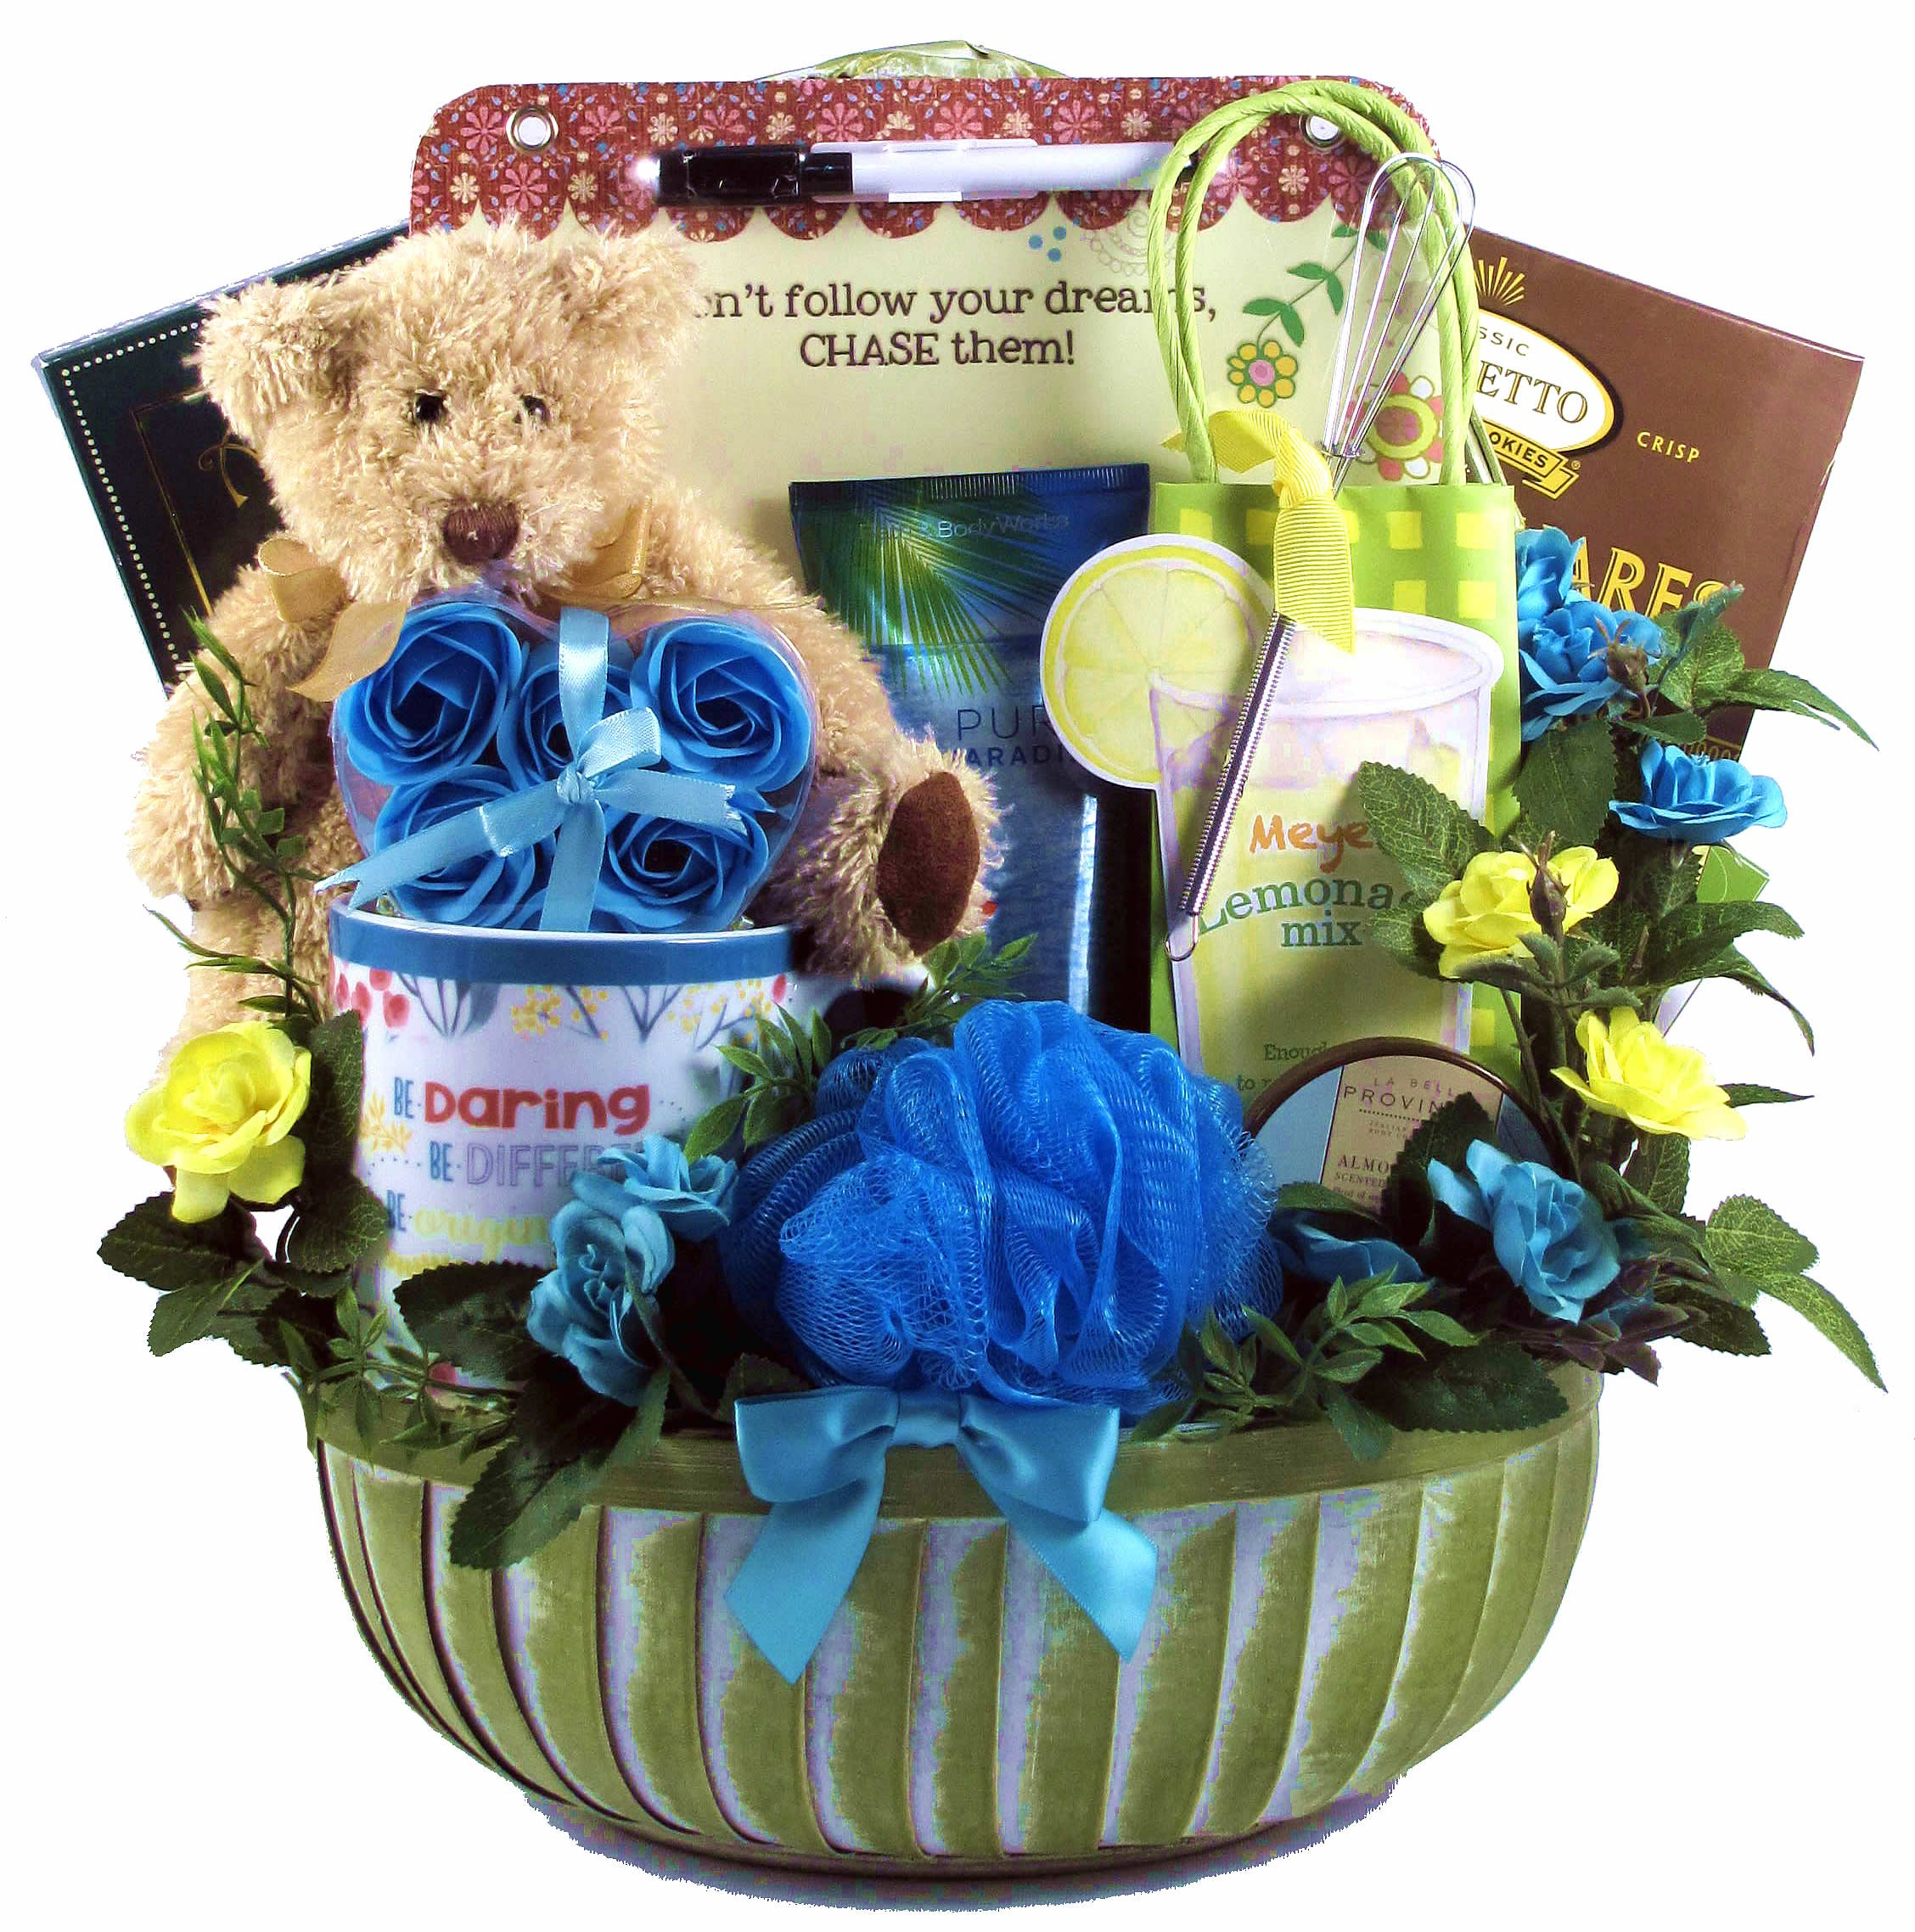 Gift Basket Village Chase Your Dreams!, Inspirational Gift Basket for Her, 9 Pound